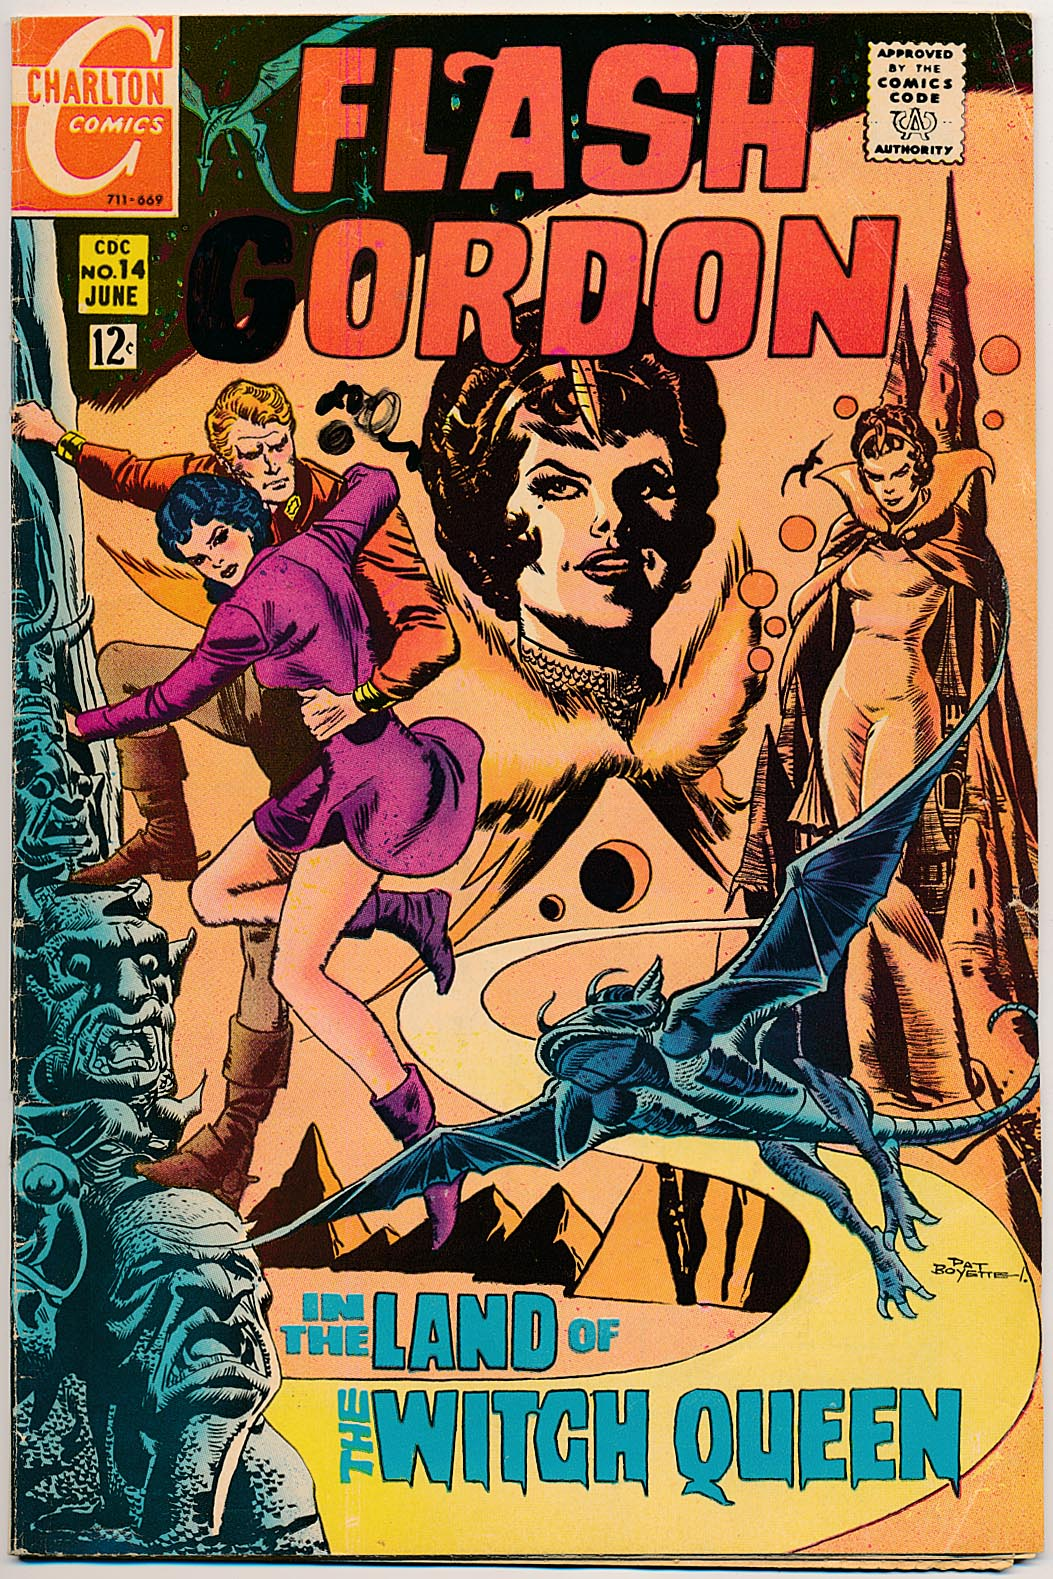 Flash Gordon (Charlton Comics) 14 -G